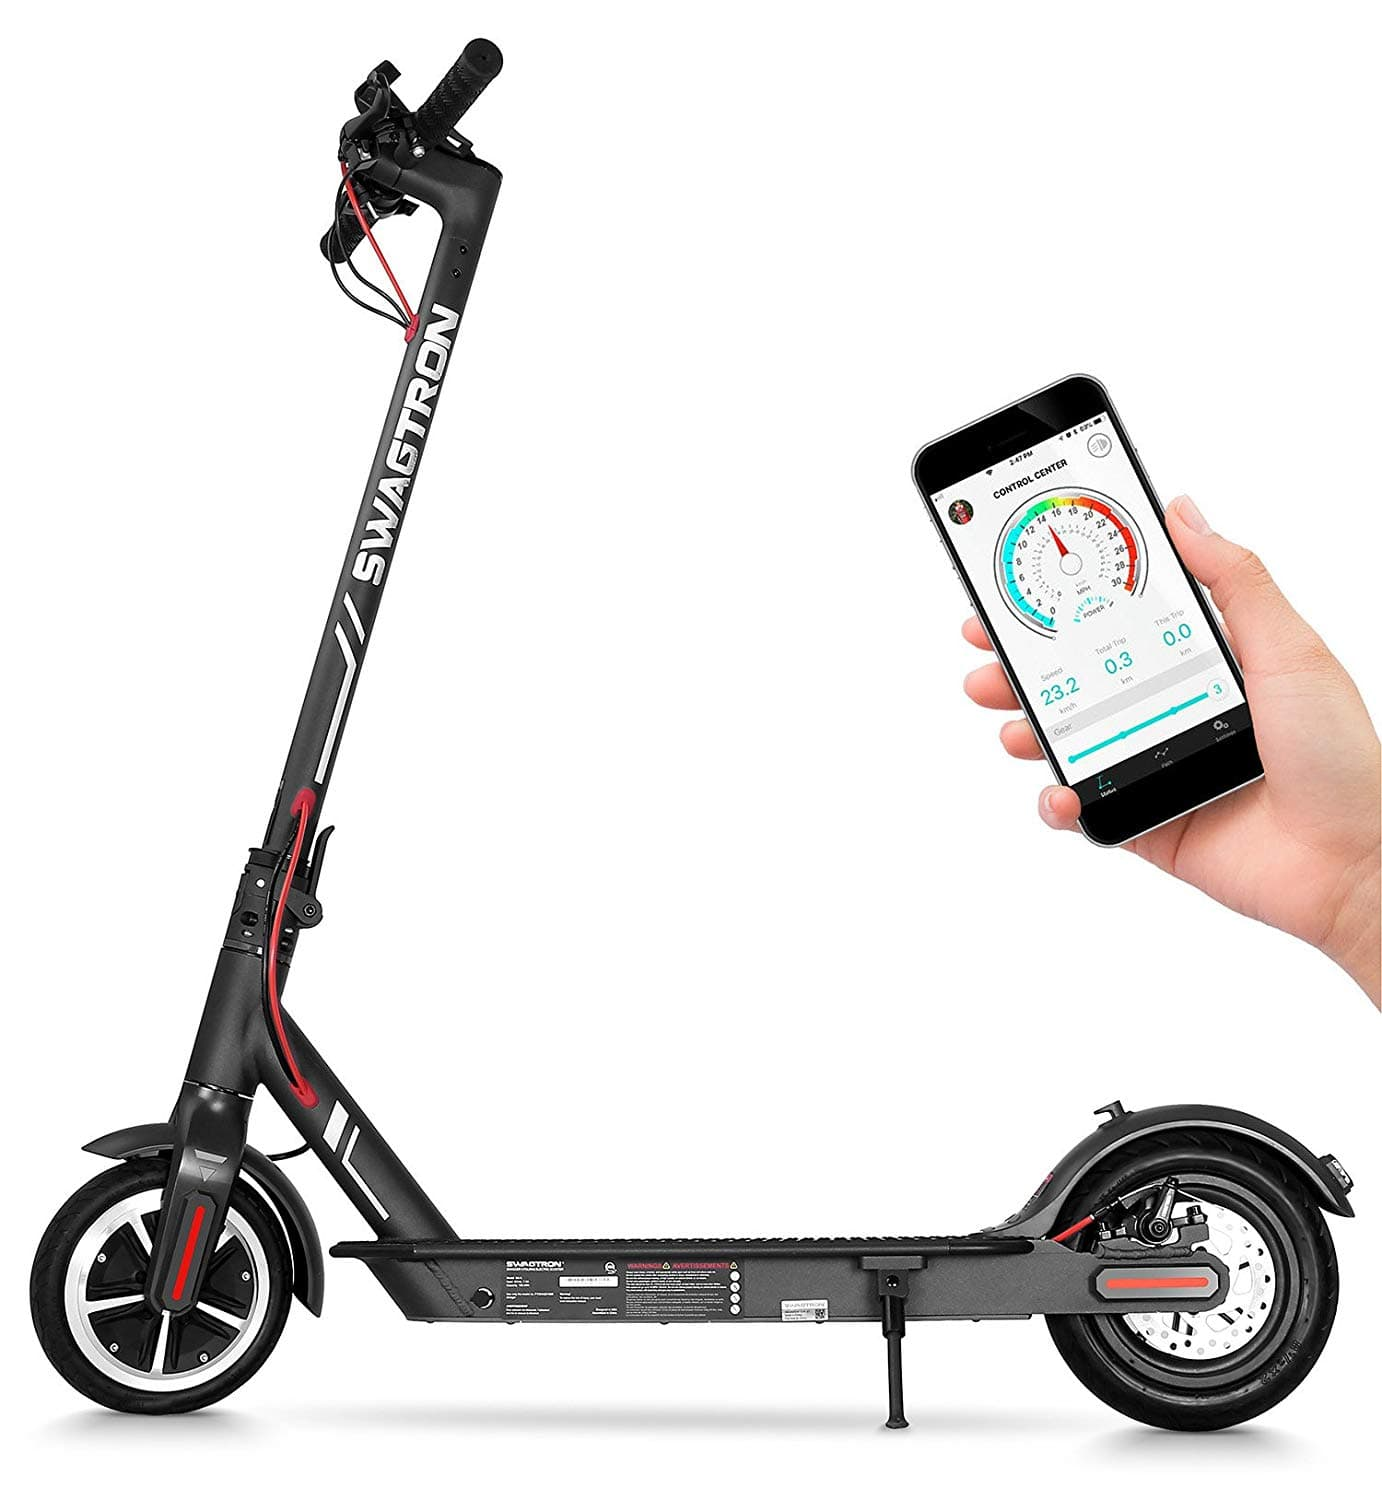 Swagtron Swagger 5 Elite Foldable City Commuter Electric Scooter